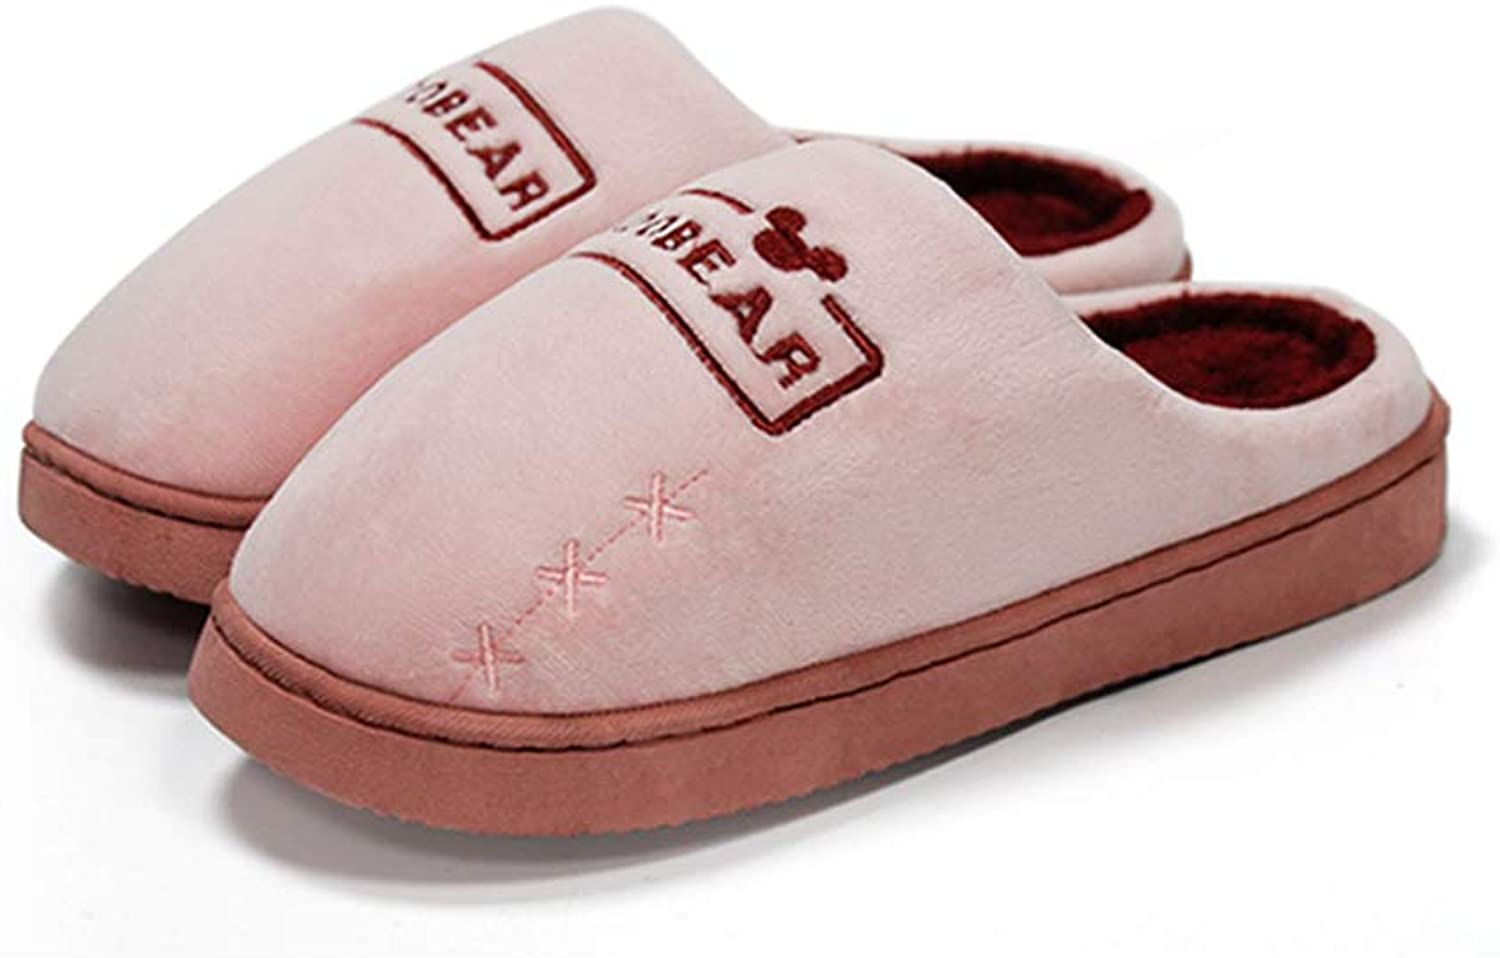 FAY WATERS Men Women's Comfort Cotton Slippers Soft Plush Lining Slip-on House shoes for Indoor Use